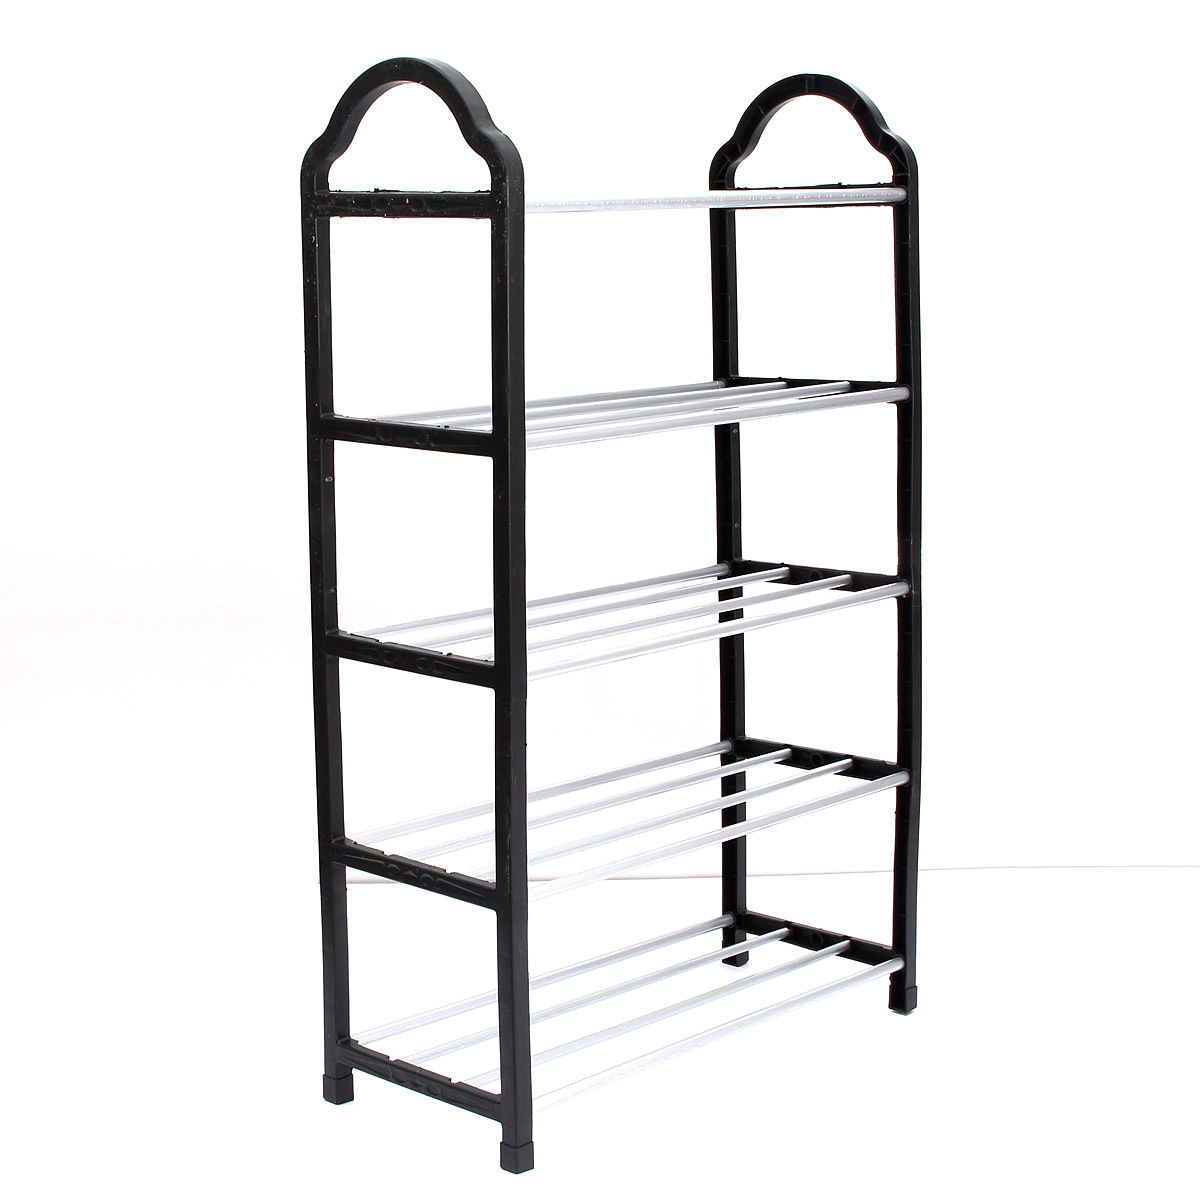 PHFU 5 Tier Home Storage Organizer Cabinet Shelf Space Saving Shoe Tower Rack Stand Black rain boots women pvc prince waterproof high heel water shoes tall rain boots ankle gummis rain boots female rubber toe rainboots